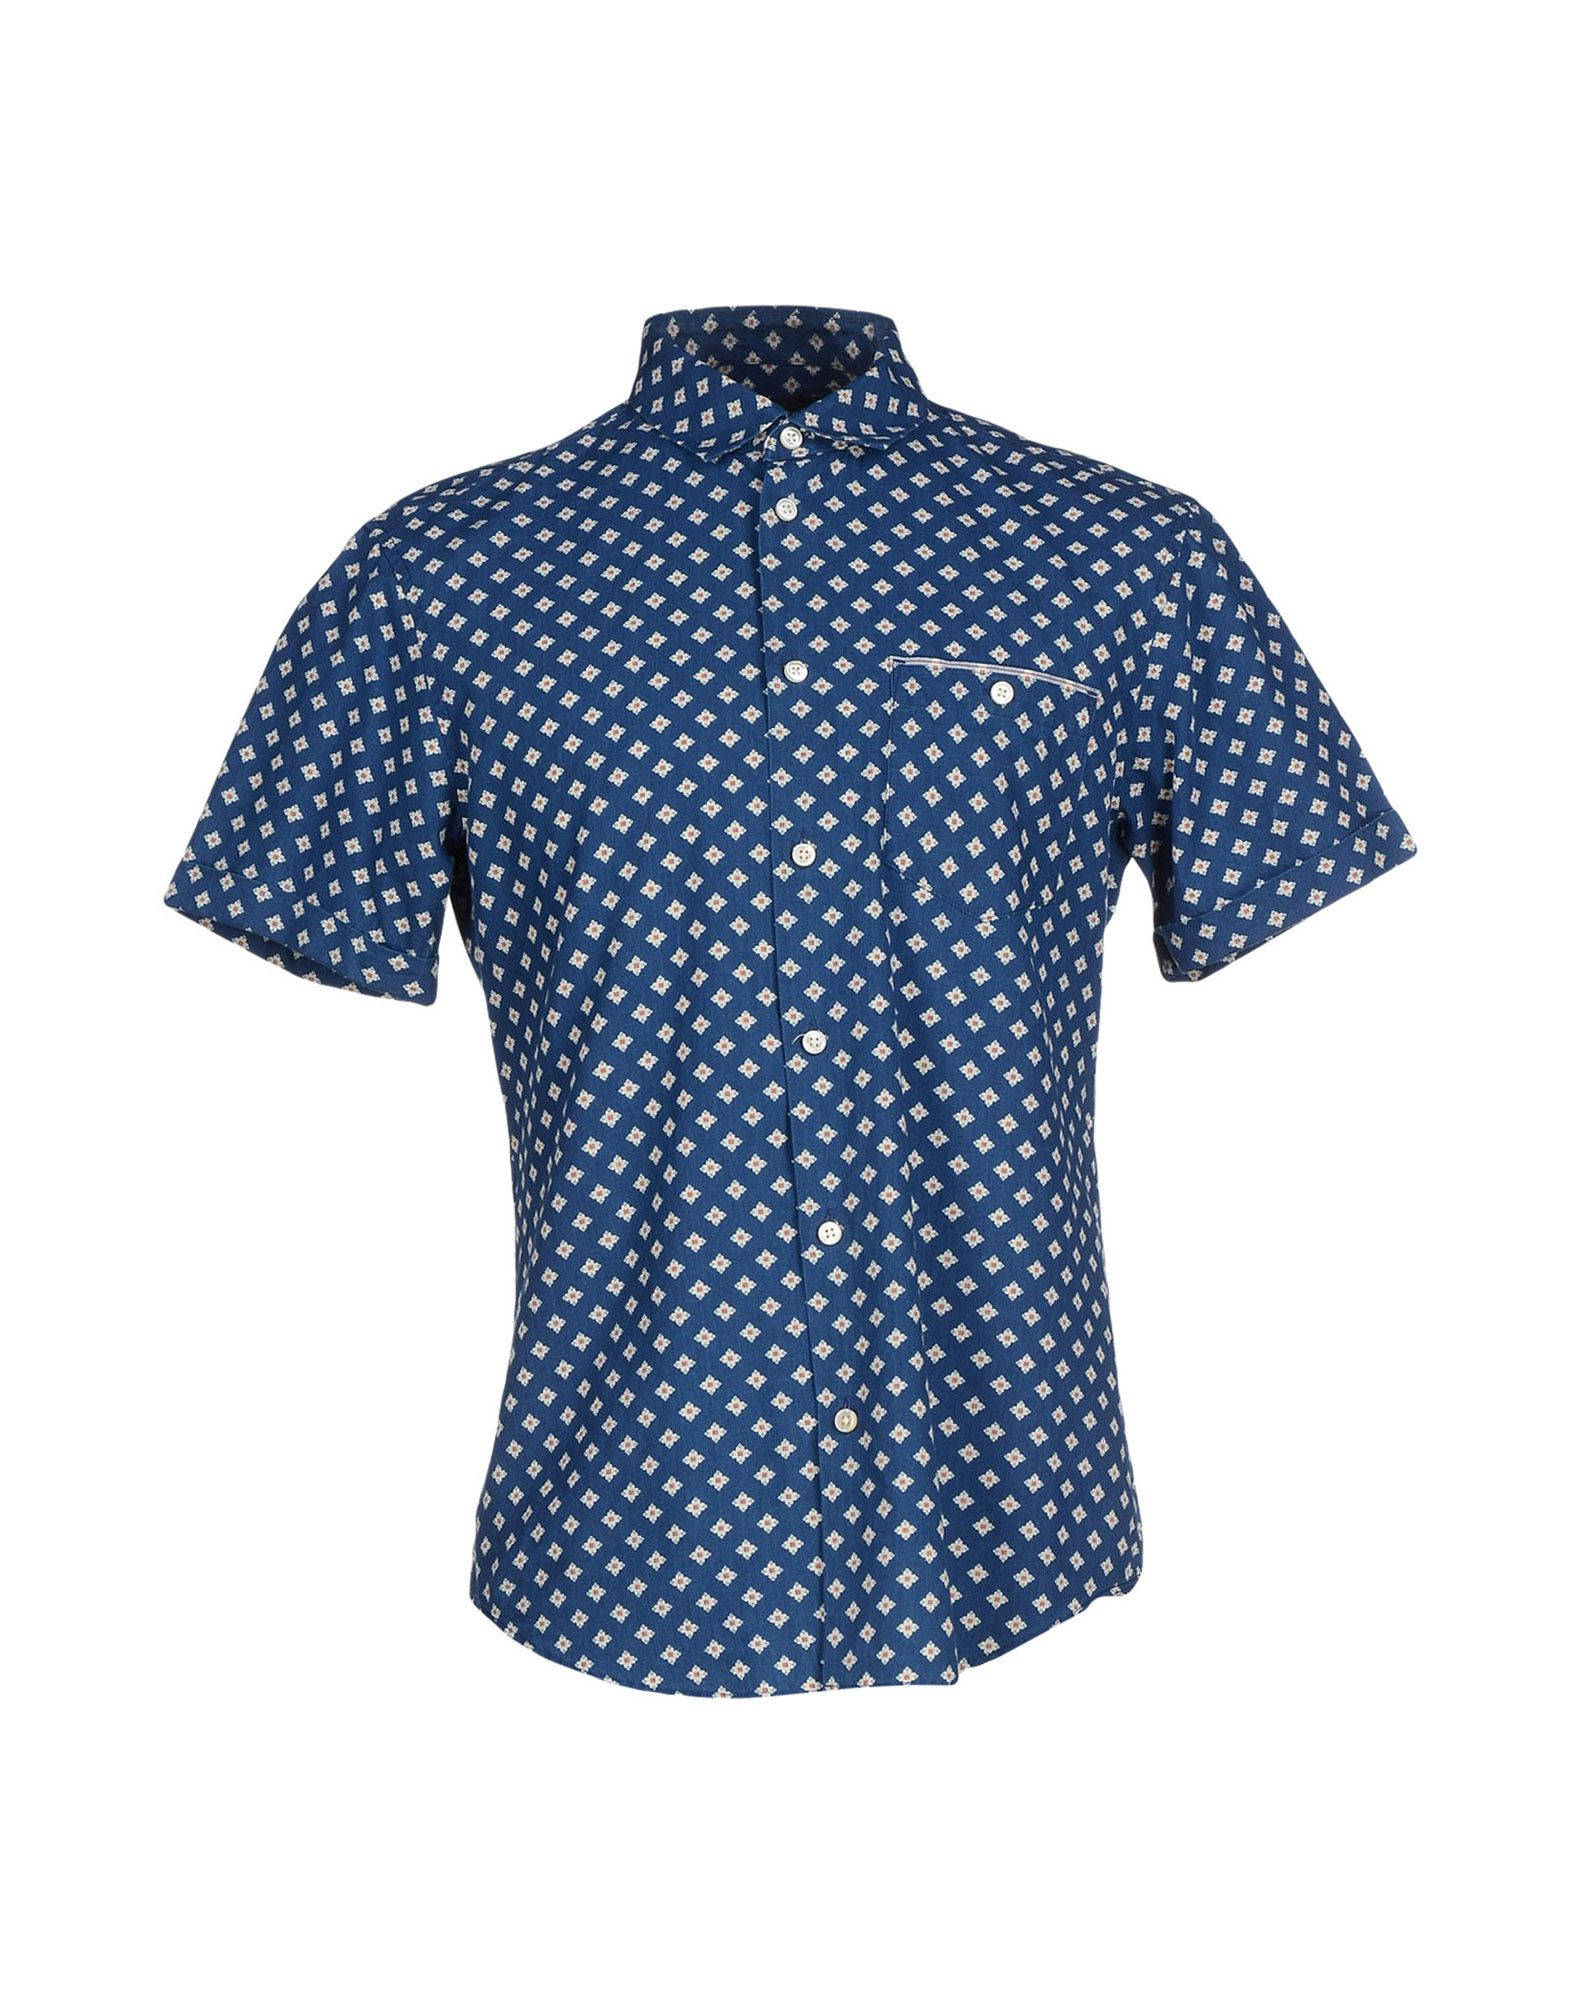 marc by marc jacobs shirt in blue for men lyst